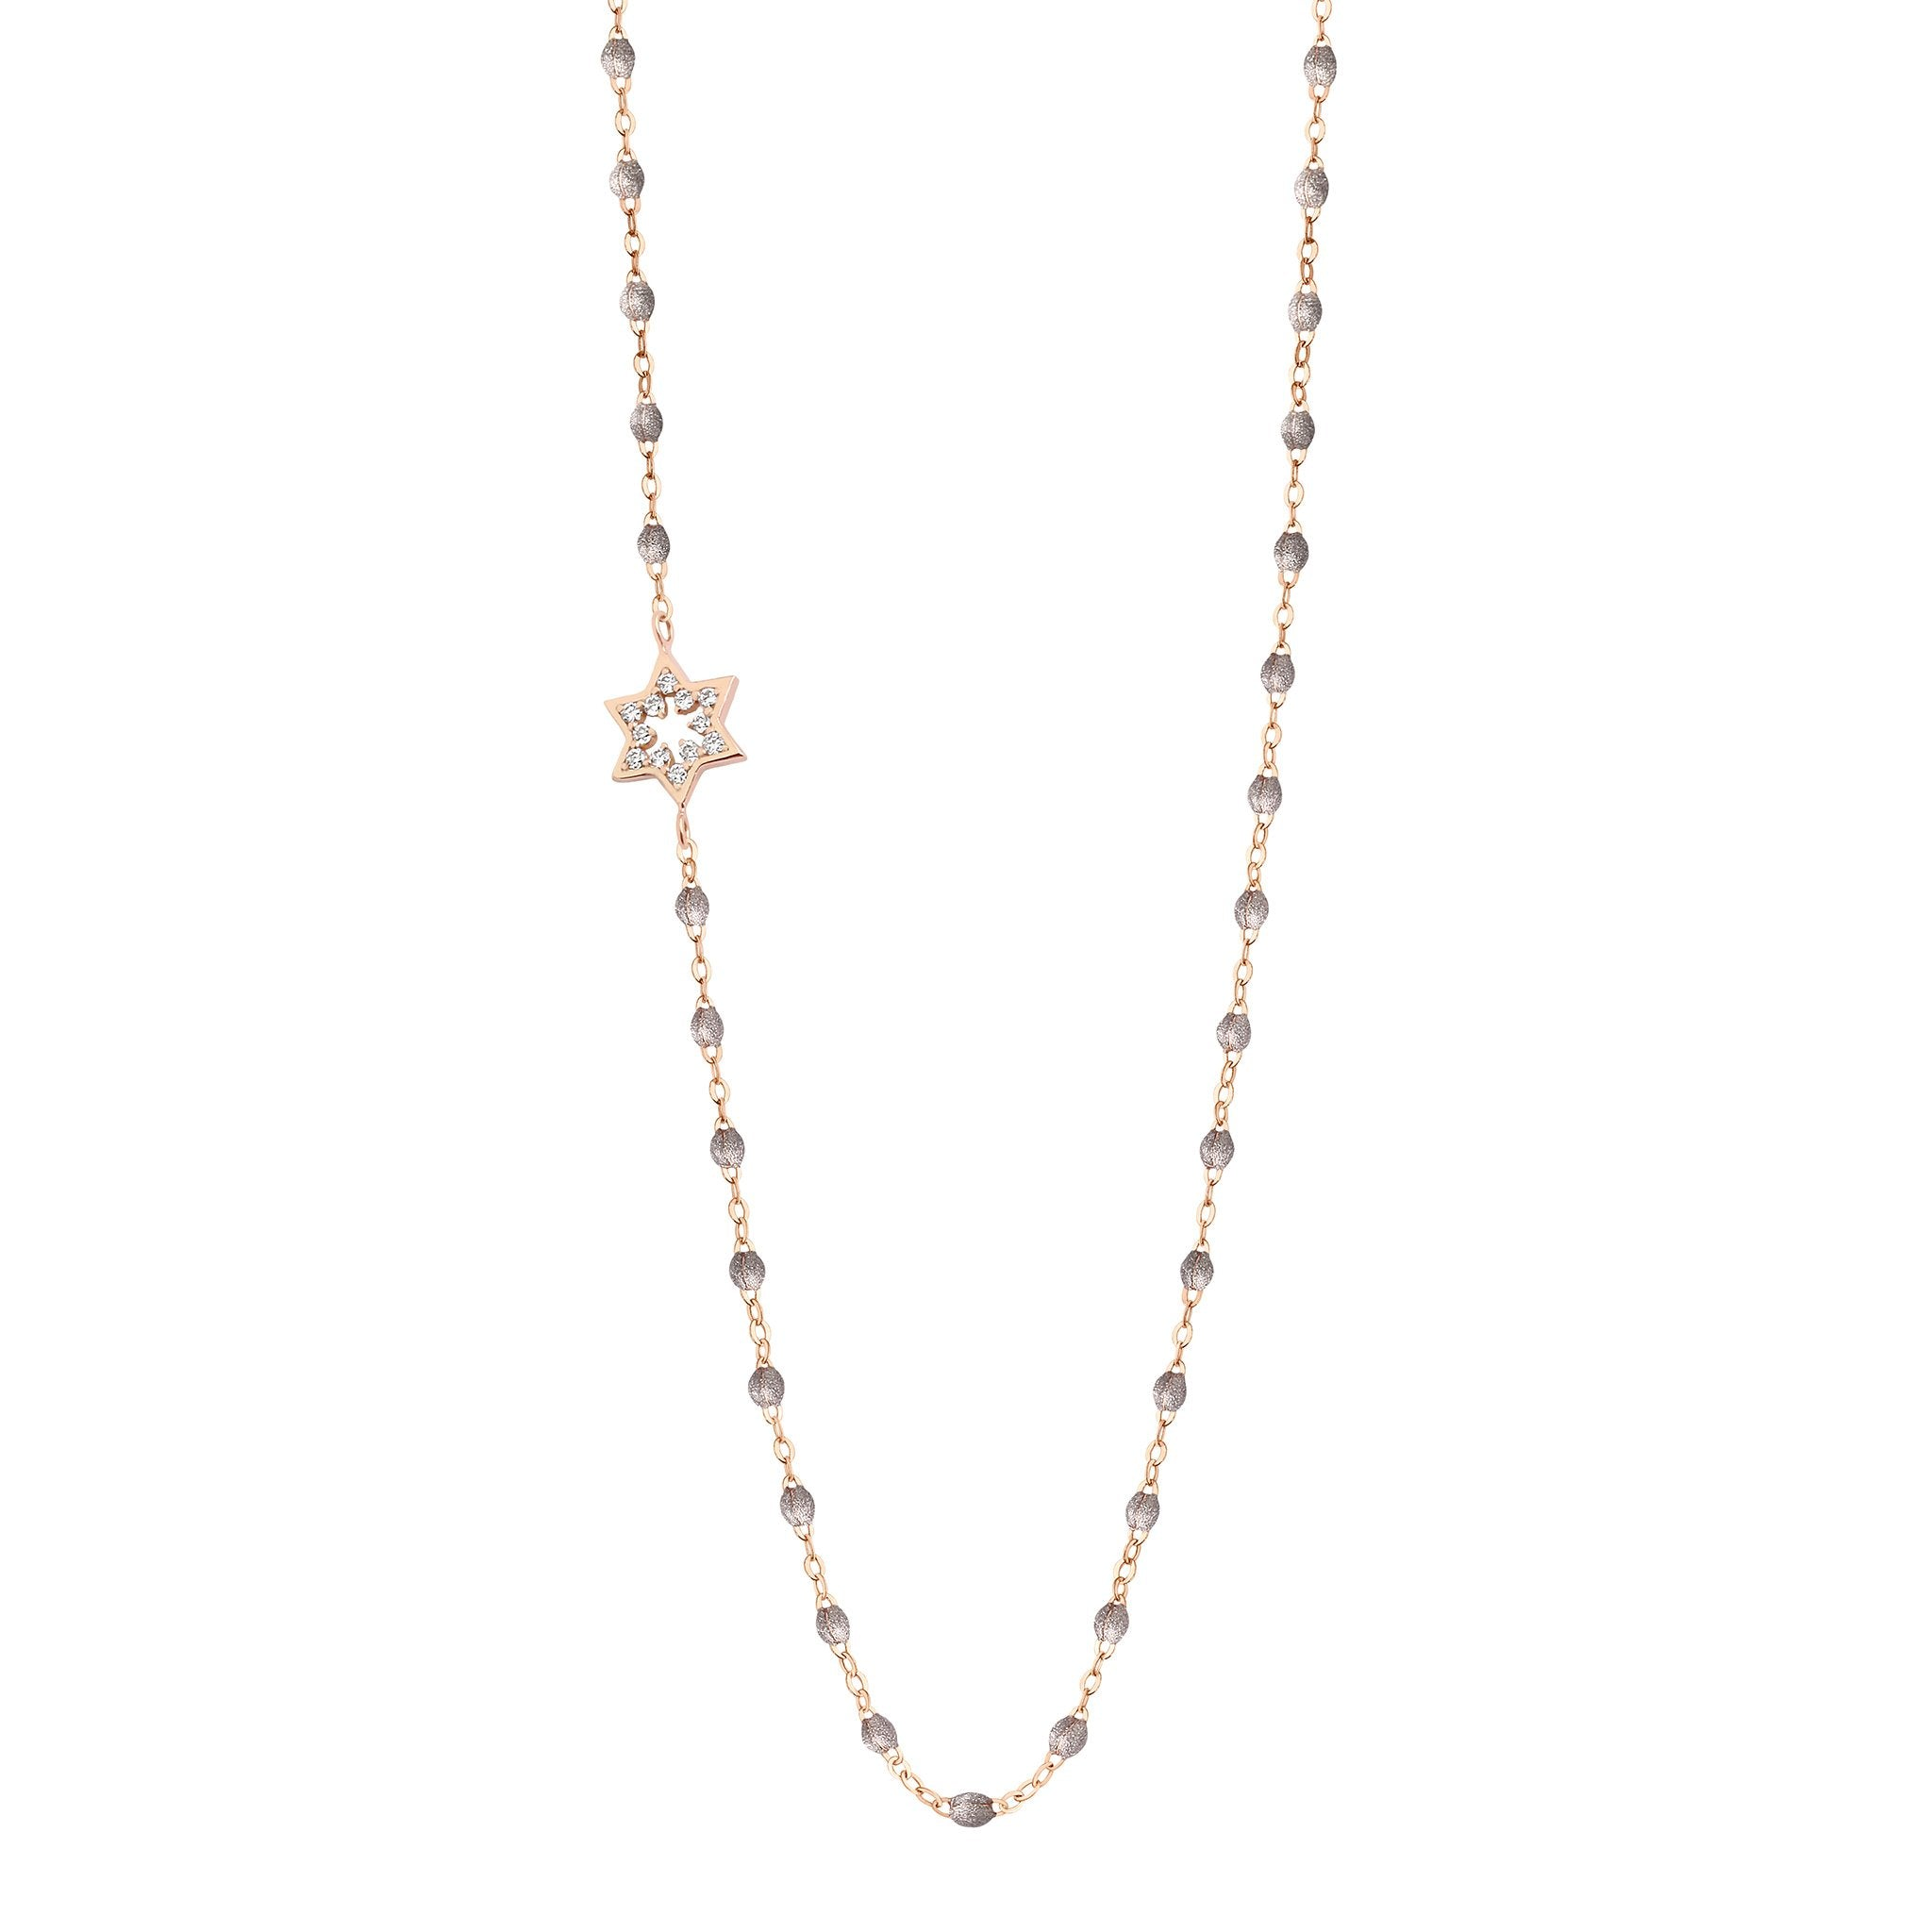 Gigi Clozeau - Star of David Classic Gigi Silver diamonds necklace, Rose Gold, 16.5""